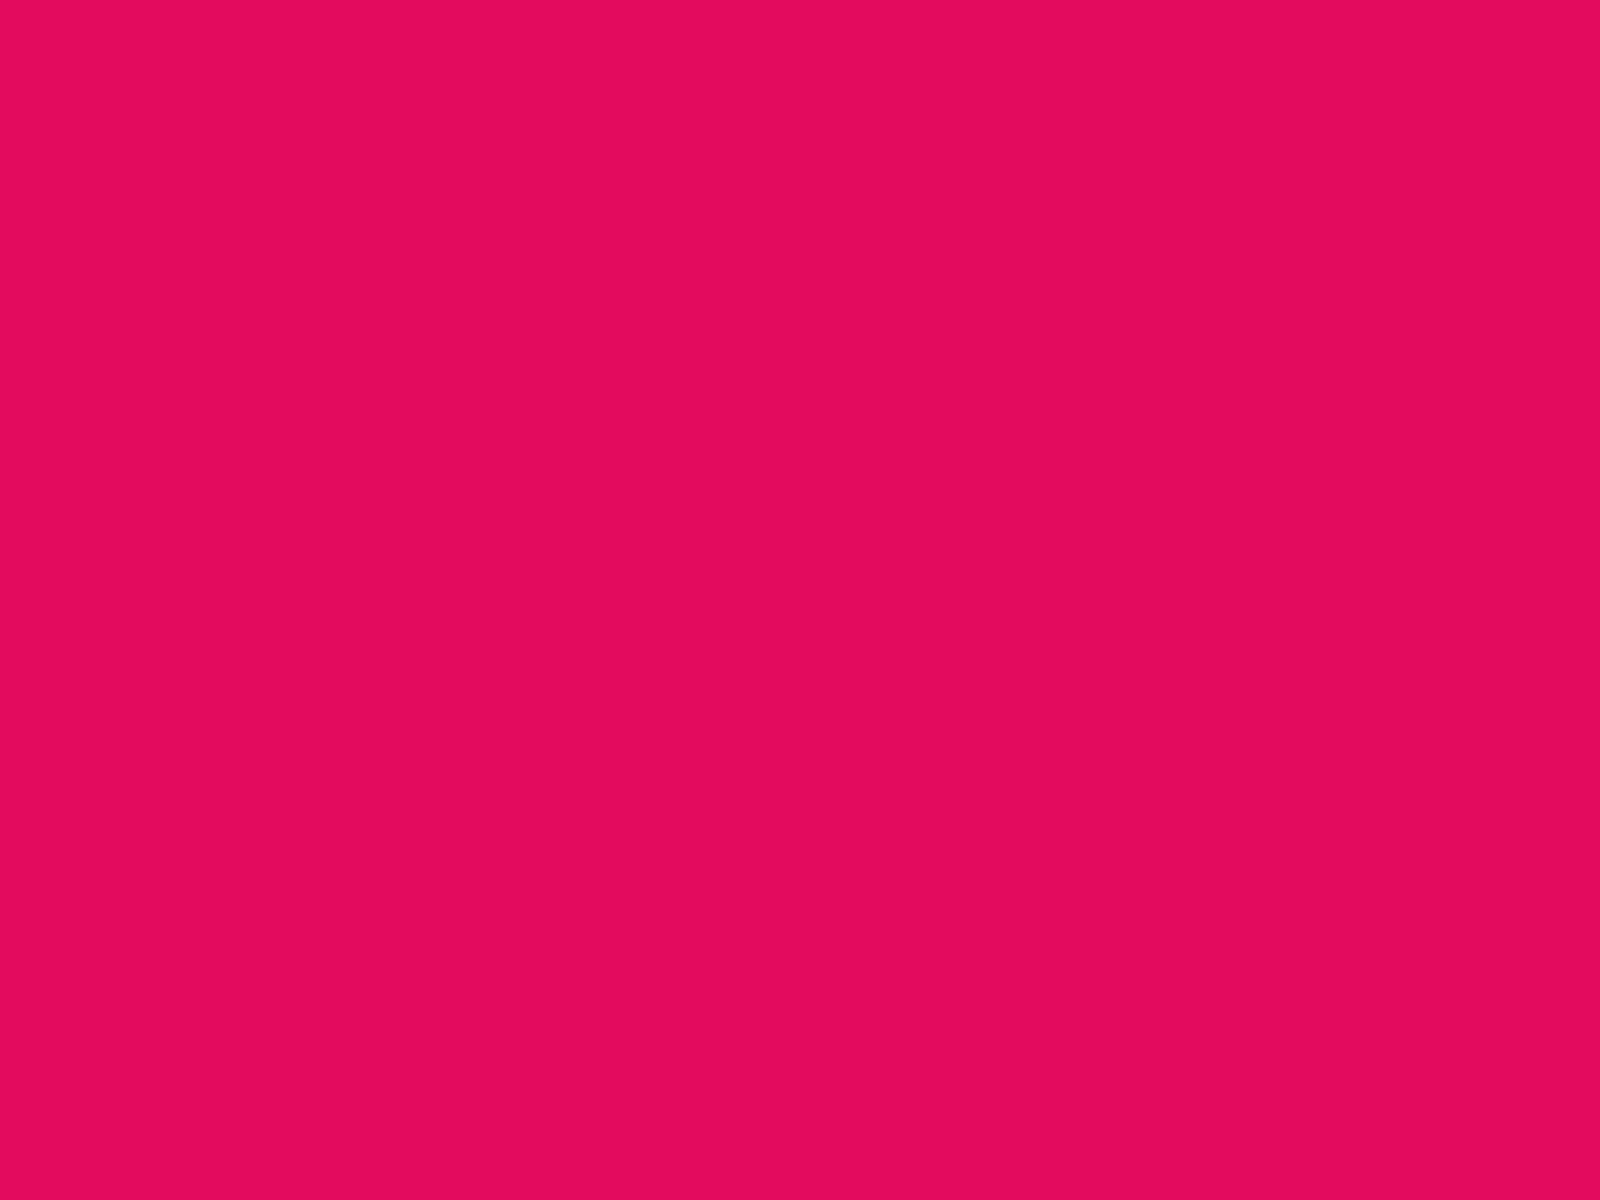 1600x1200 Raspberry Solid Color Background